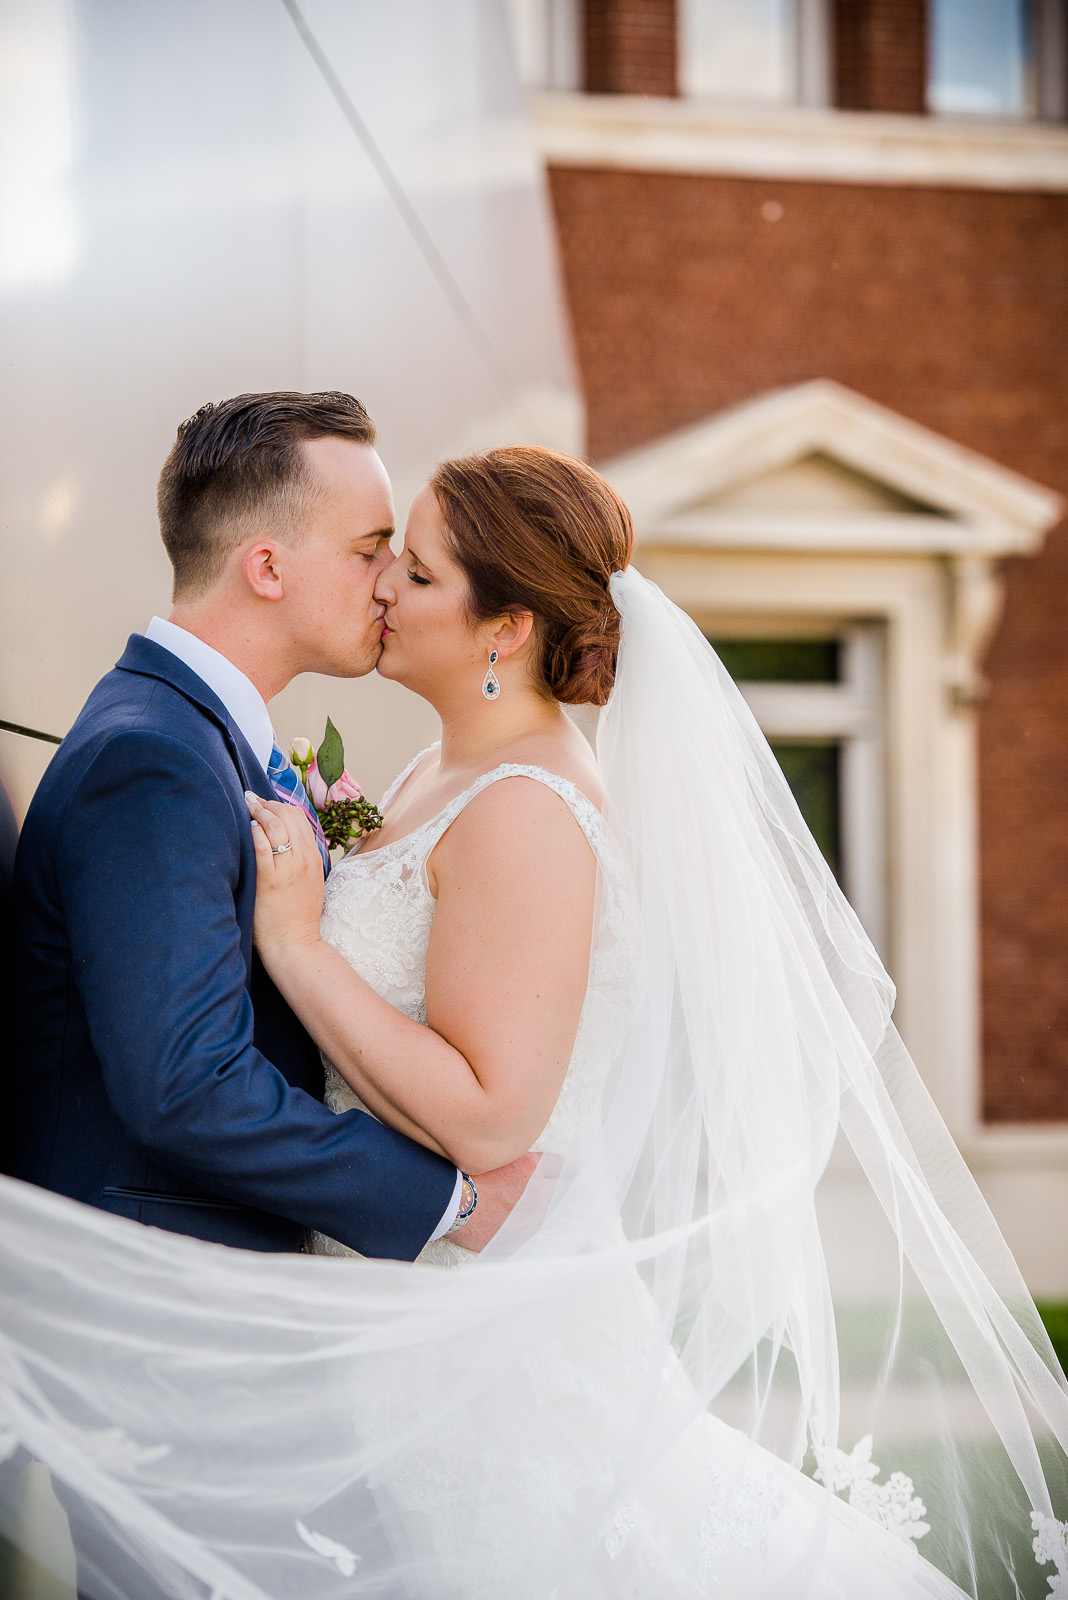 Eric_and_Christy_Photography_Blog_Wedding_Paige_Eric-53